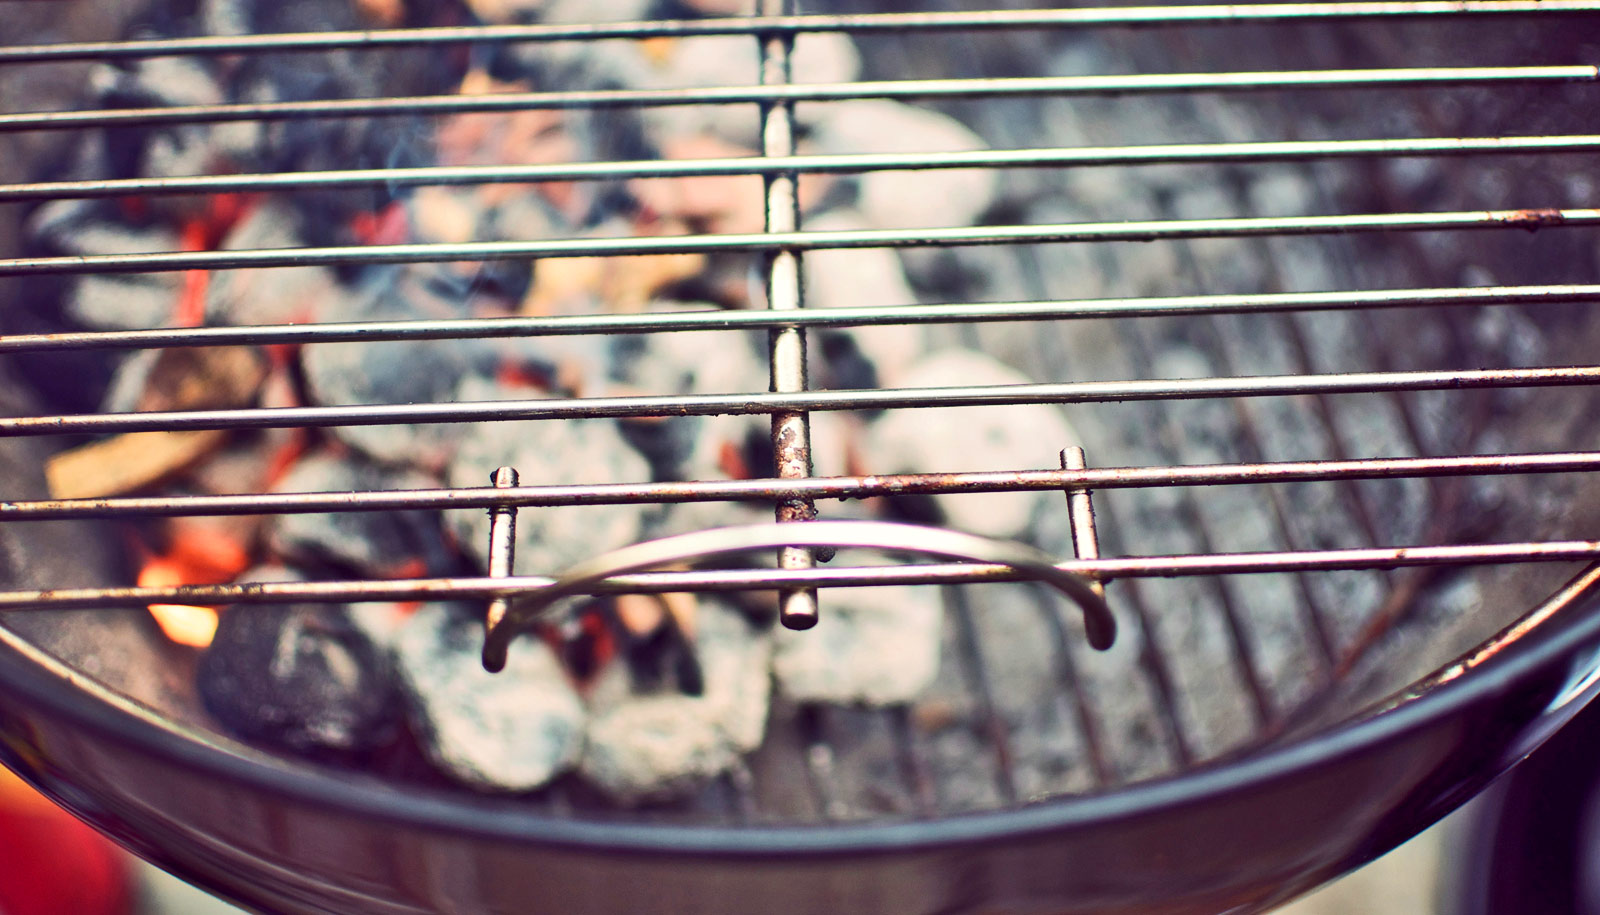 Don't let grilling lodge metal wires in your throat